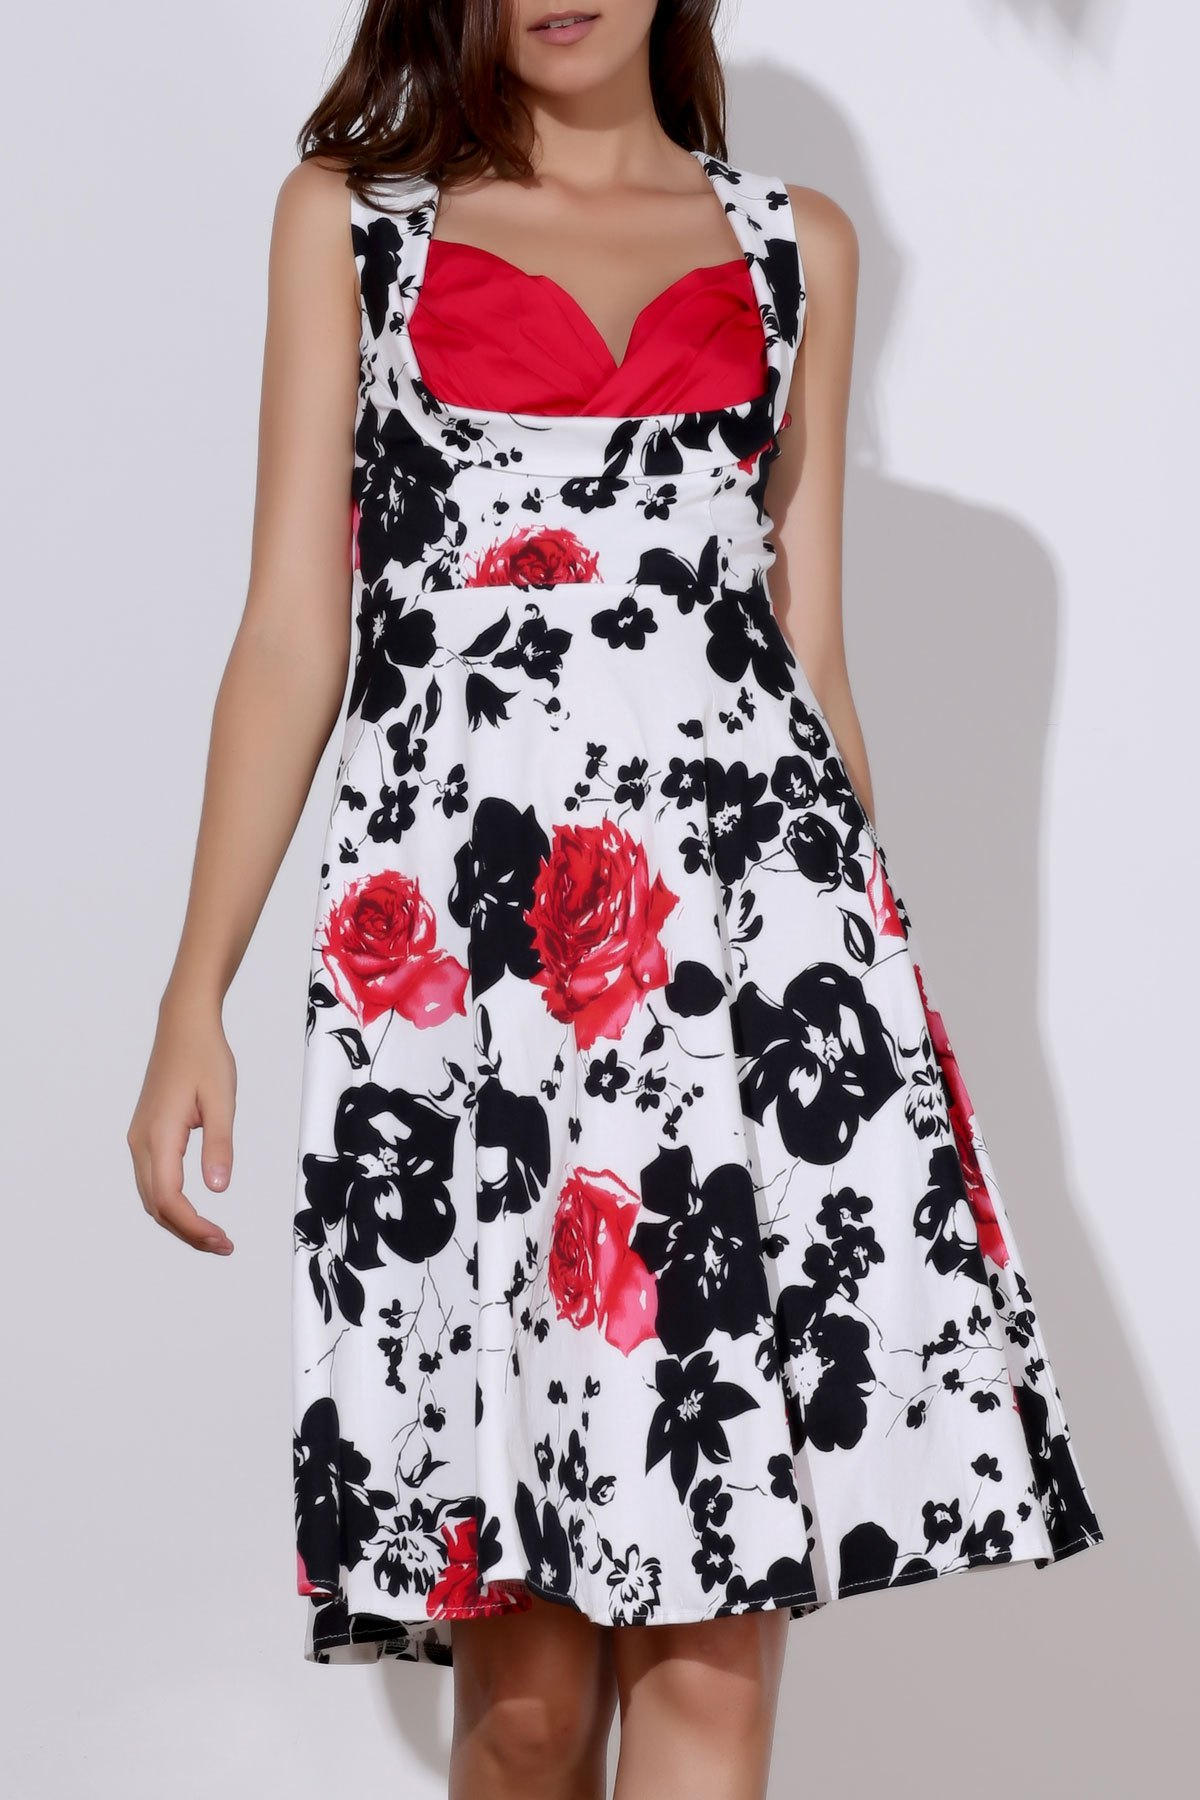 Floral Print Sweetheart Neck Sleeveless Ball Gown Dress For Women - RED M